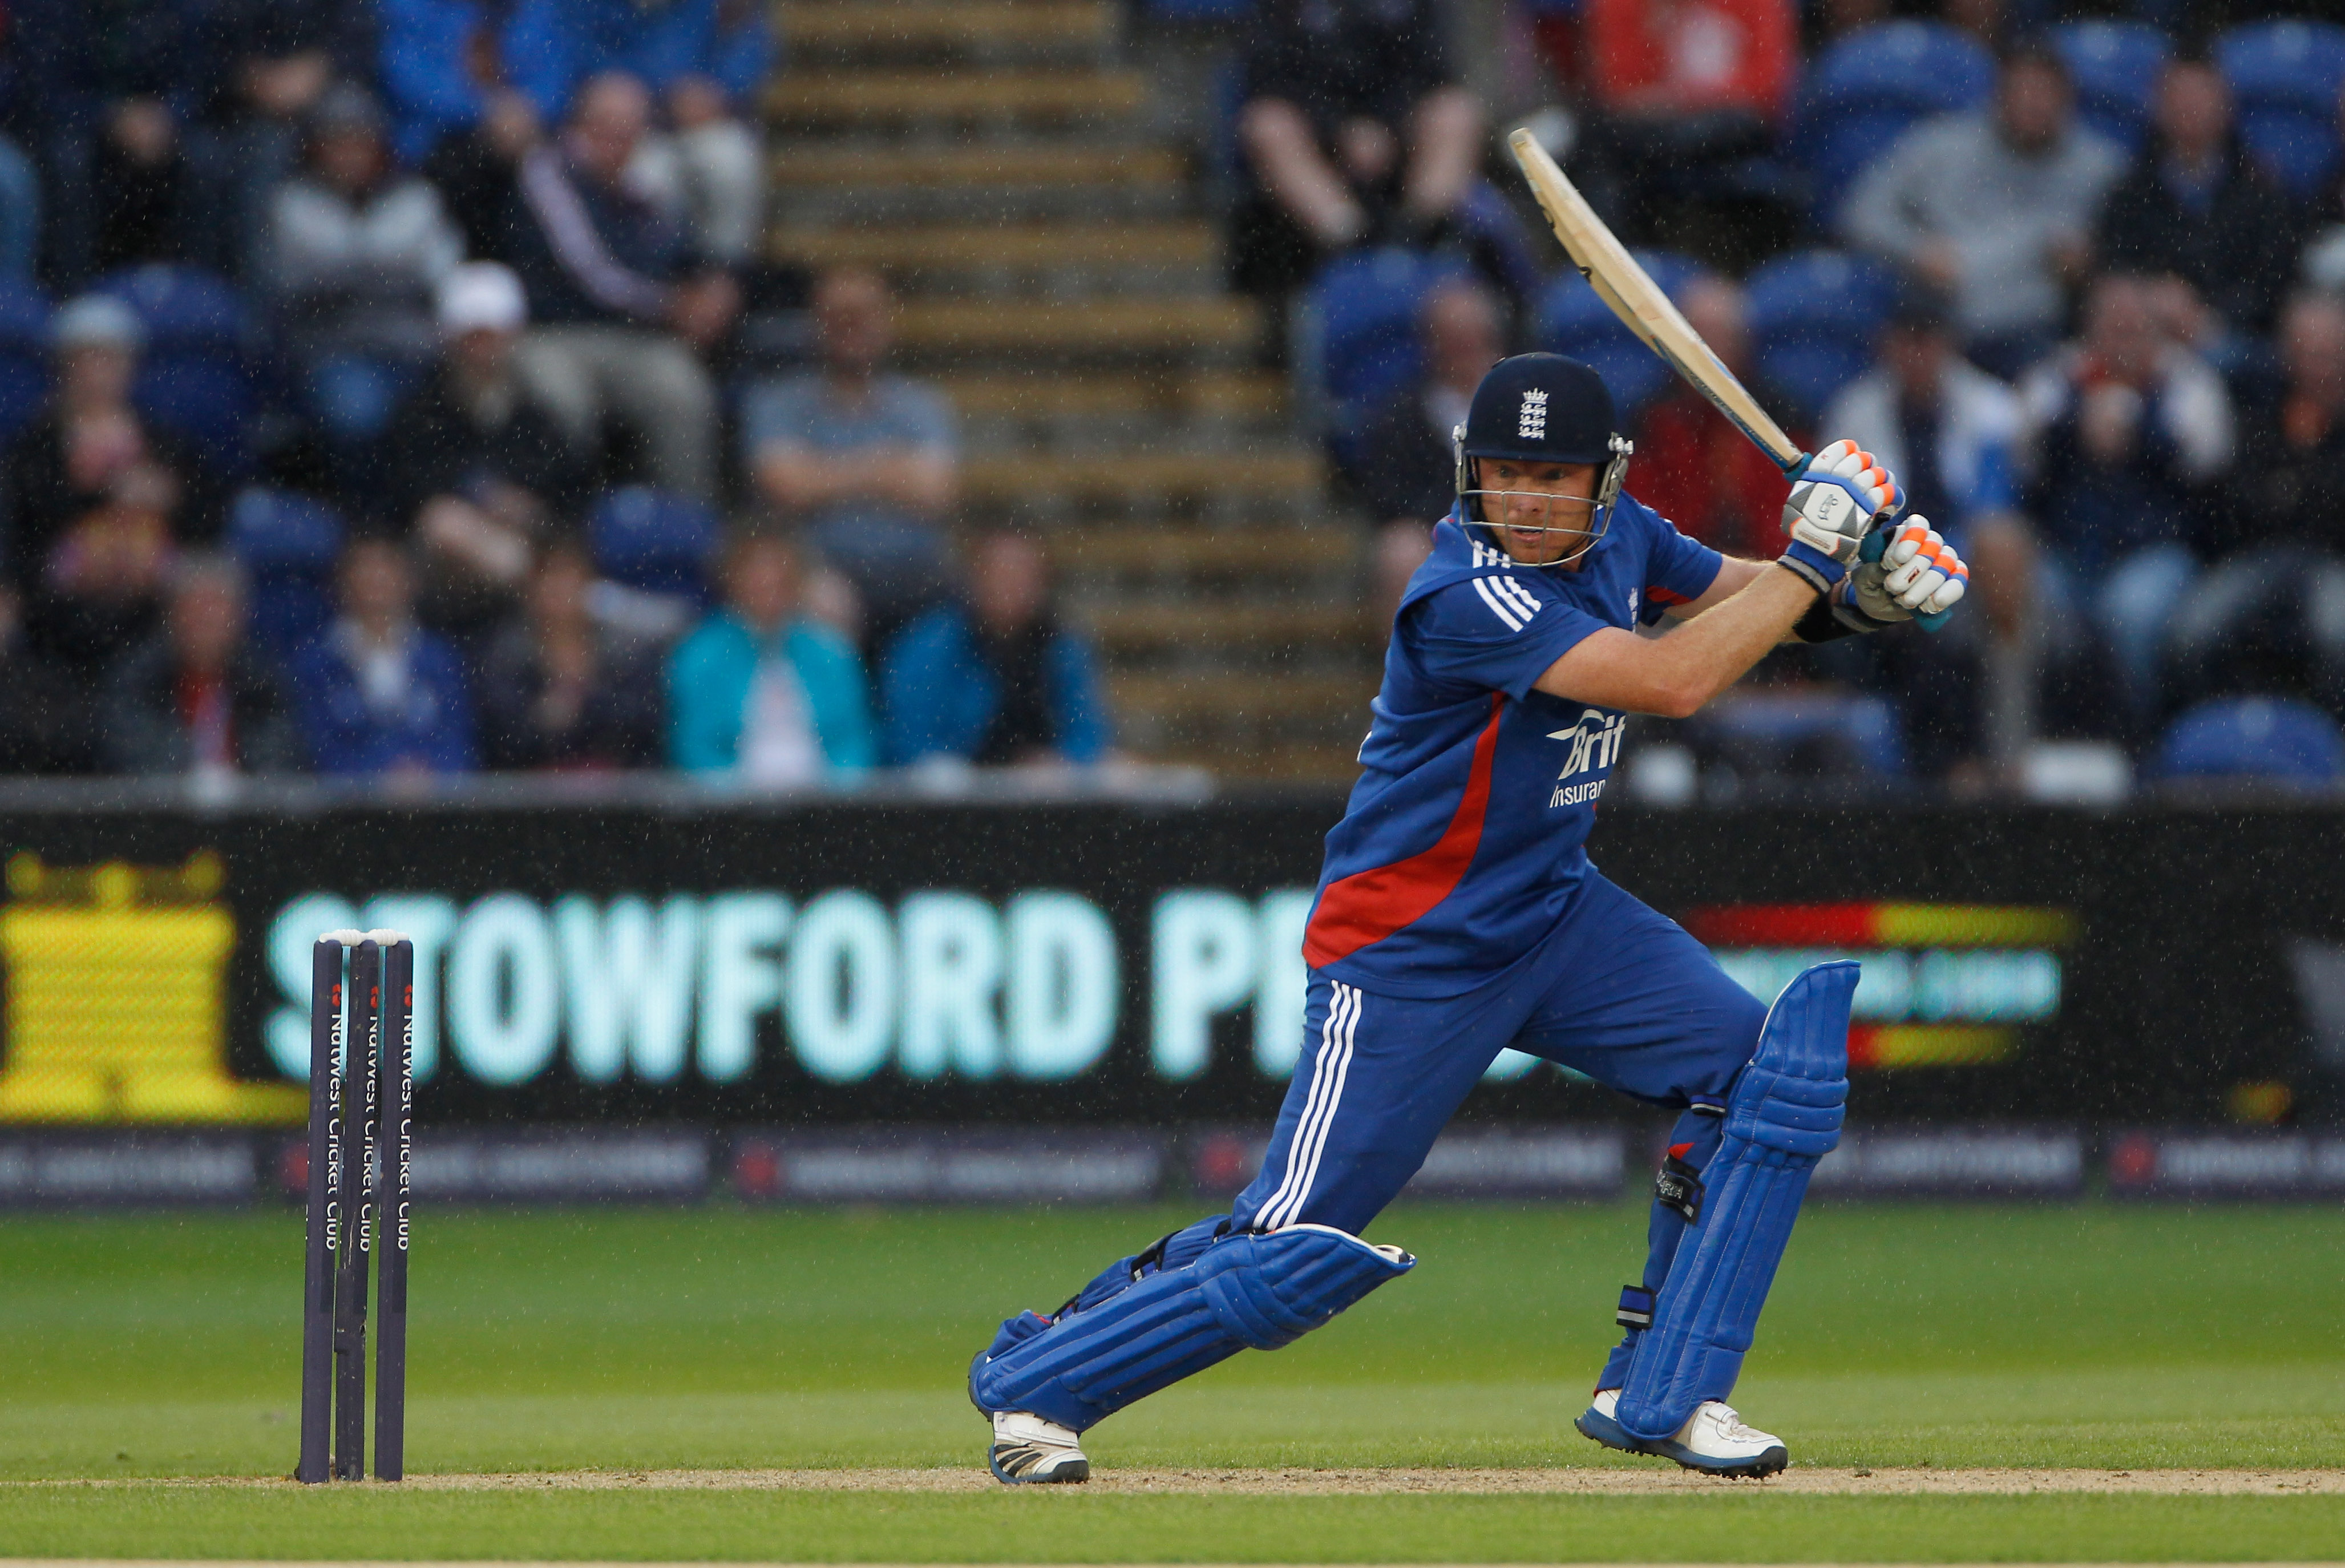 Bell played anchor yet again as he led England home against an incisive bowling attack